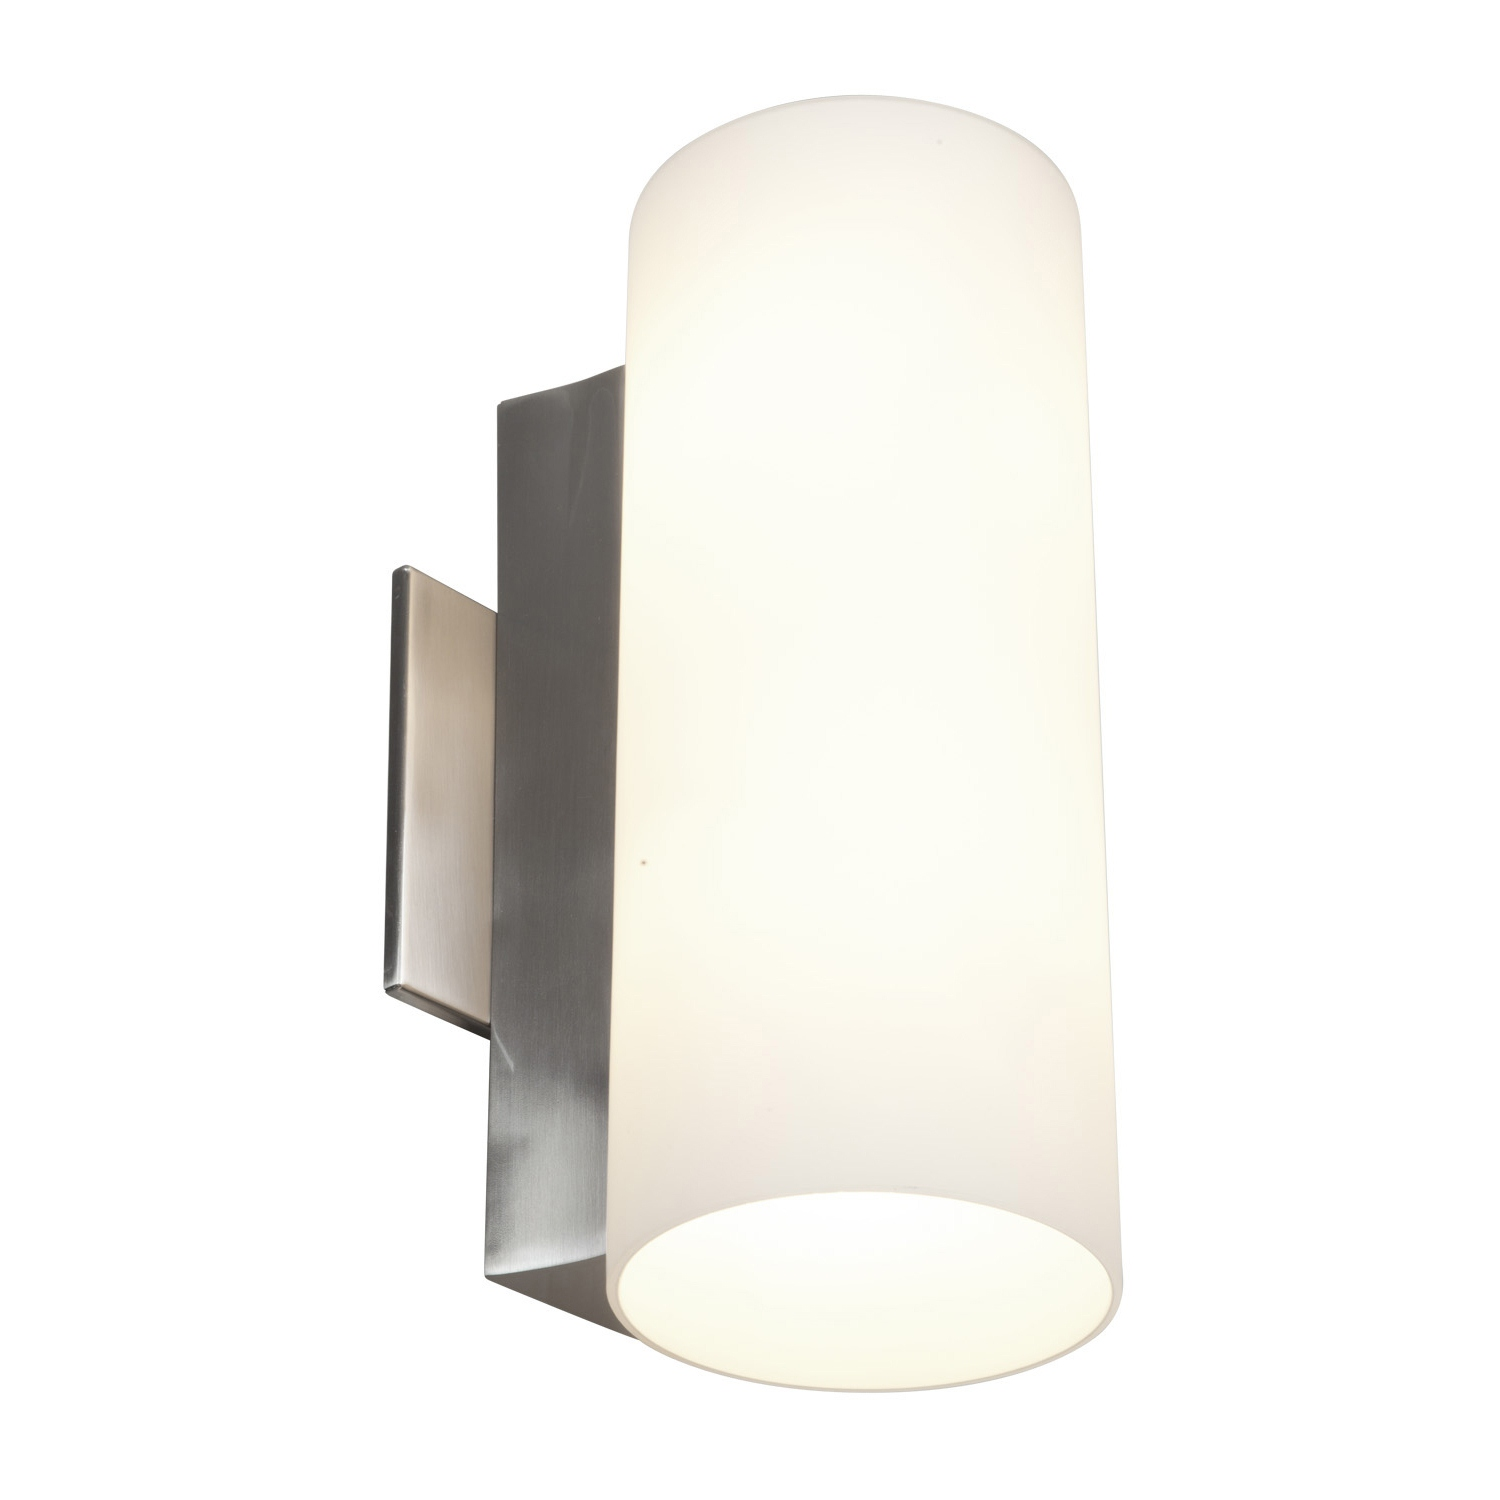 Wall Sconce Light Bulbs : Add Beauty to Your Home with 2 light wall sconces Warisan Lighting